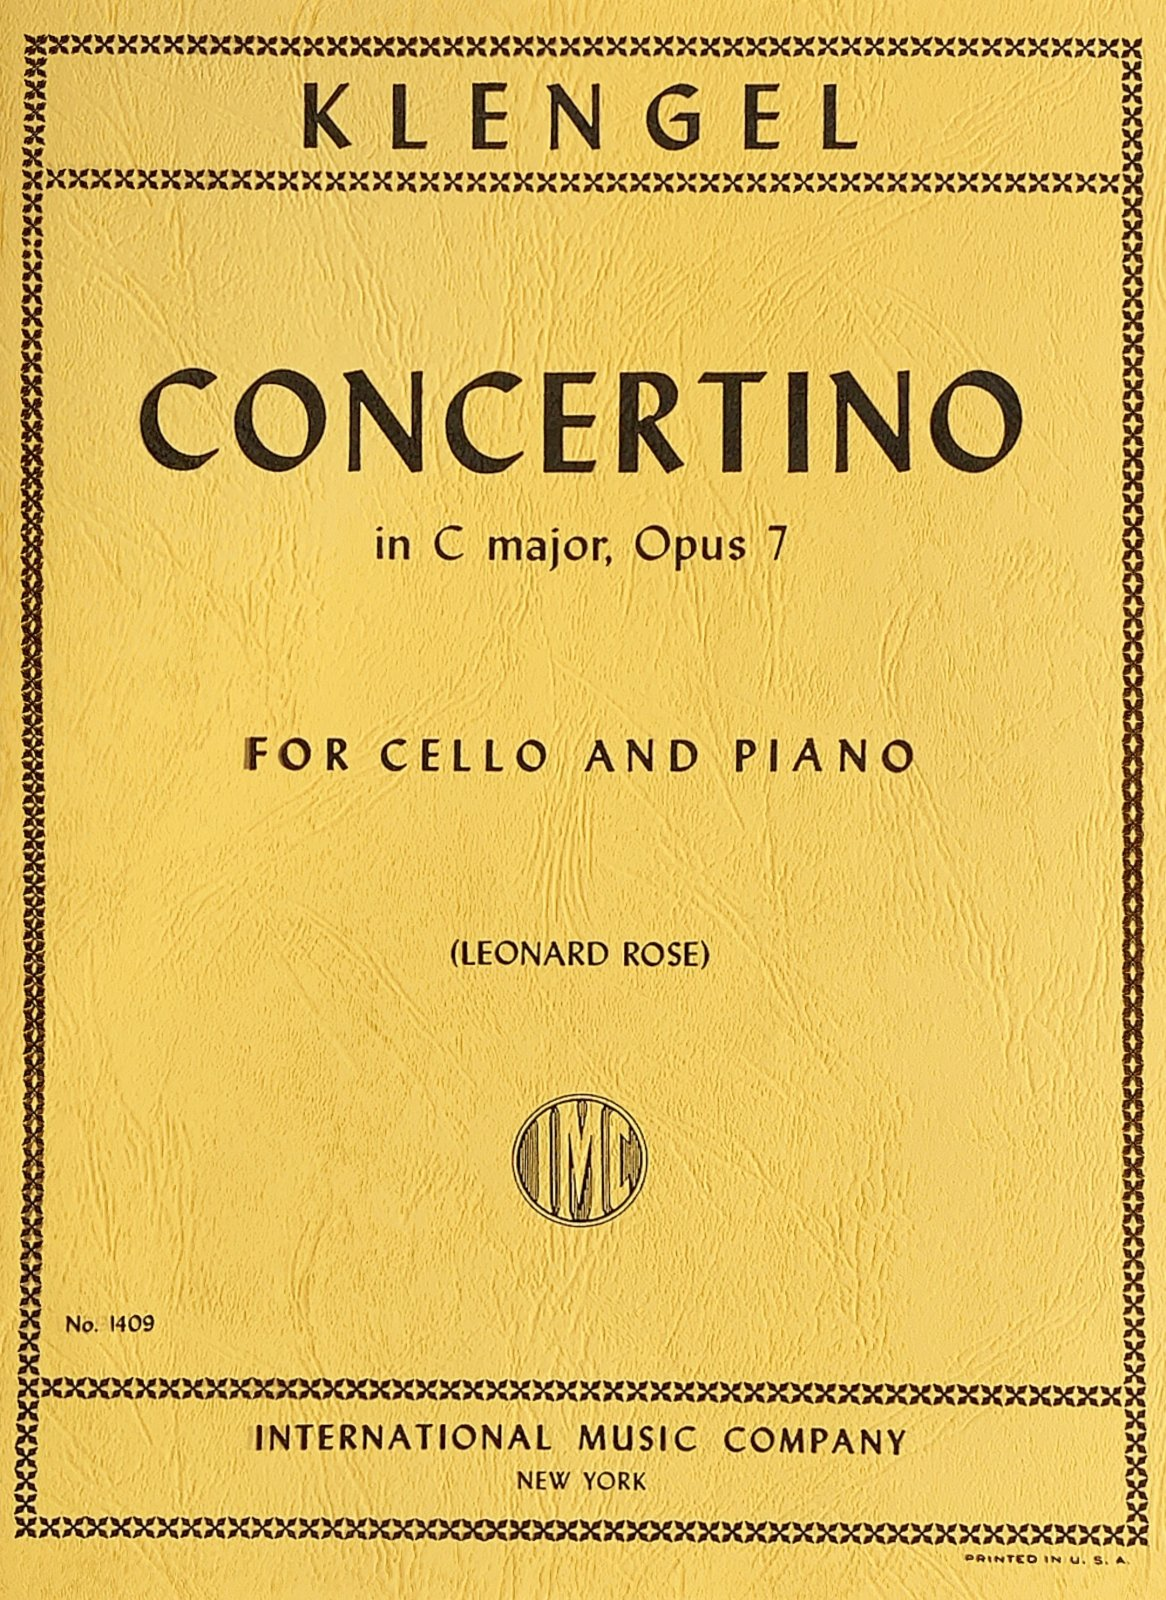 Concertino in C major Op 7 - Klengel - Cello and Piano - Rose - International